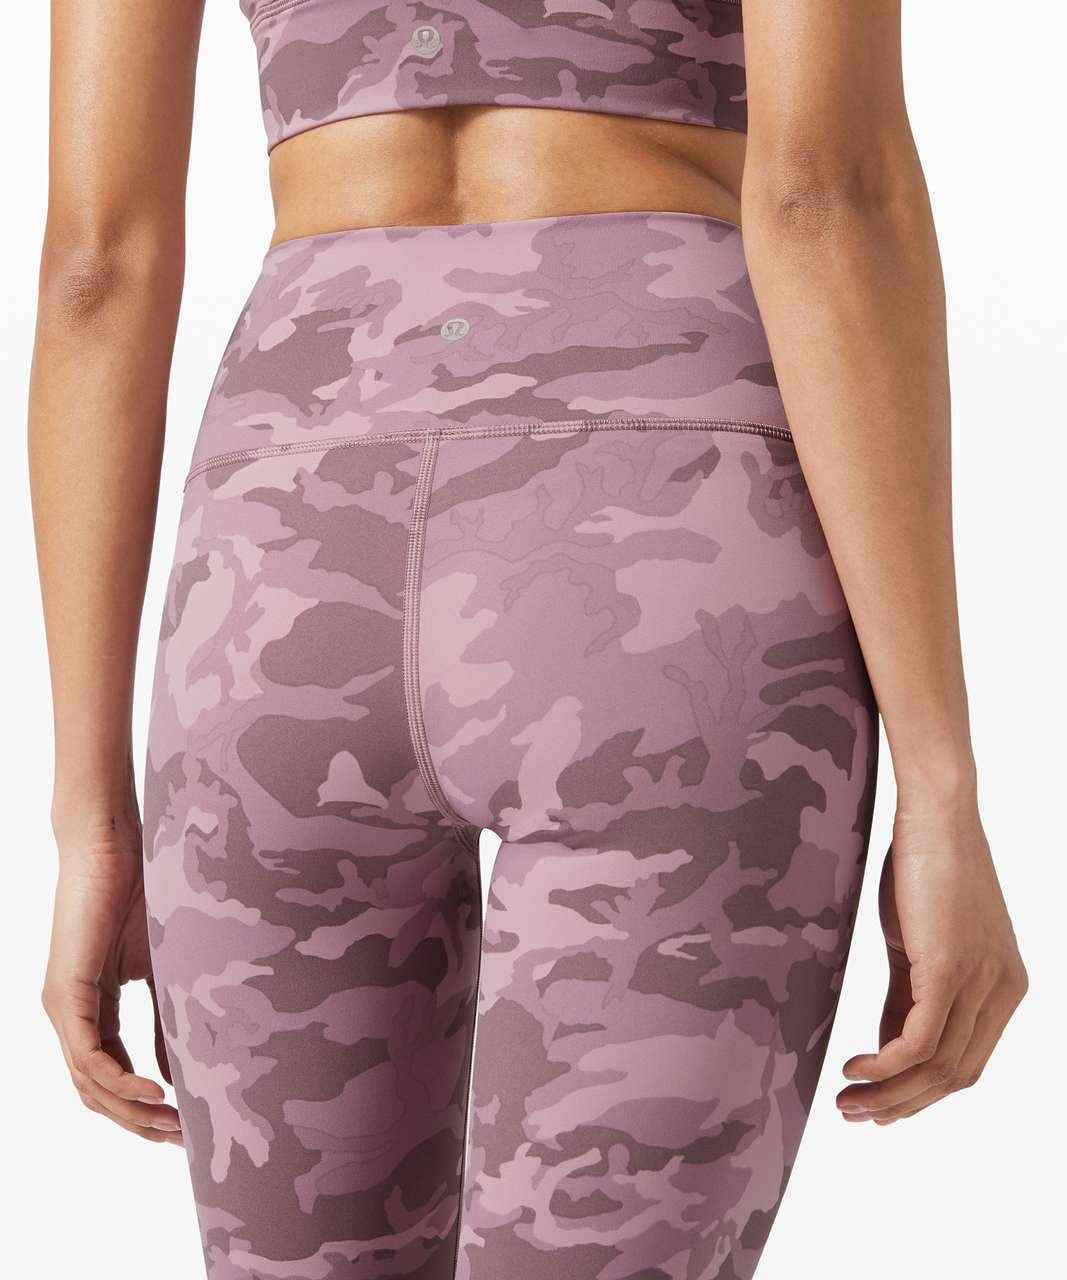 """Lululemon Wunder Under High-Rise Tight 25"""" *Full-On Luxtreme - Incognito Camo Pink Taupe Multi"""